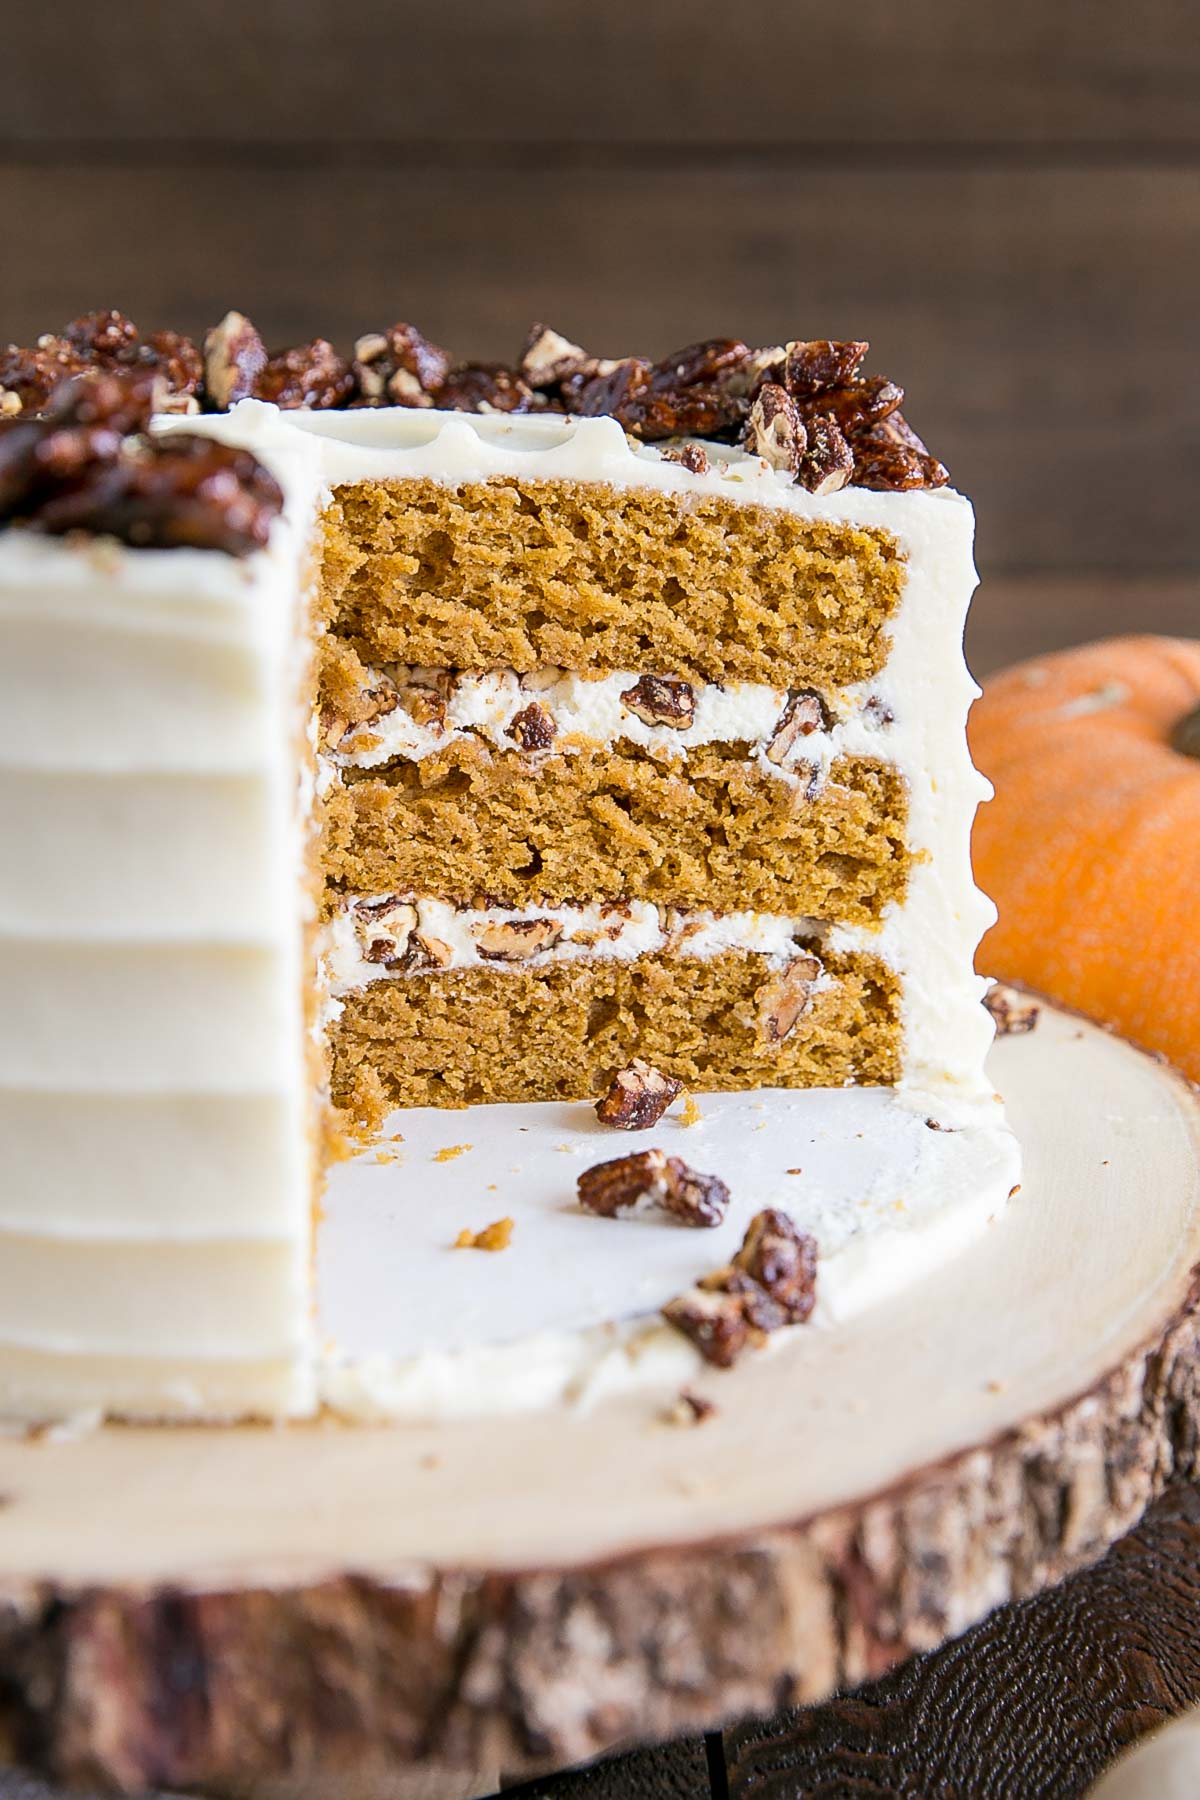 Cross-section of pumpkin cake with candied pecans.